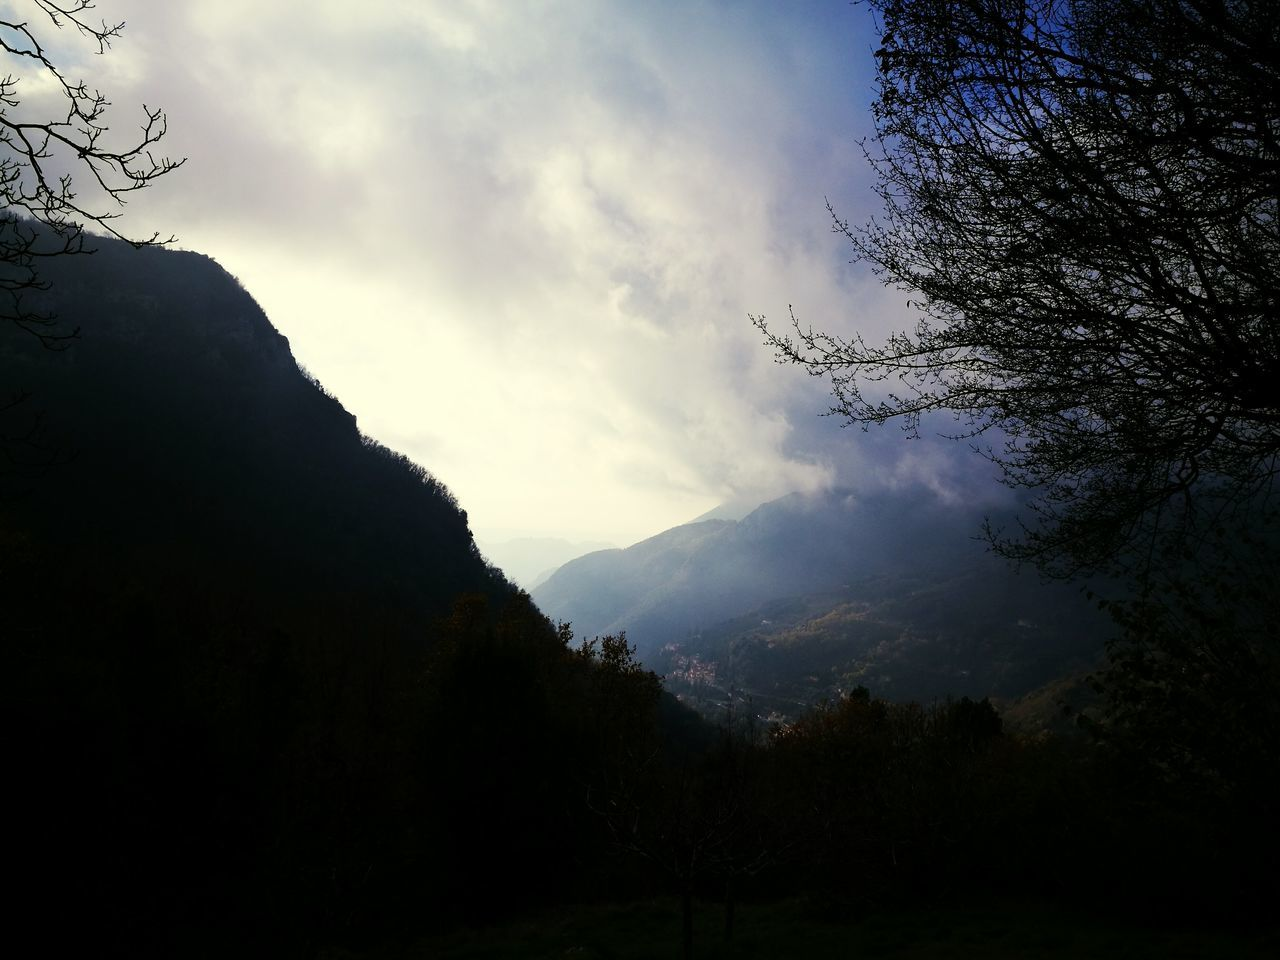 beauty in nature, mountain, nature, tranquil scene, tranquility, no people, sky, scenics, outdoors, landscape, tree, day